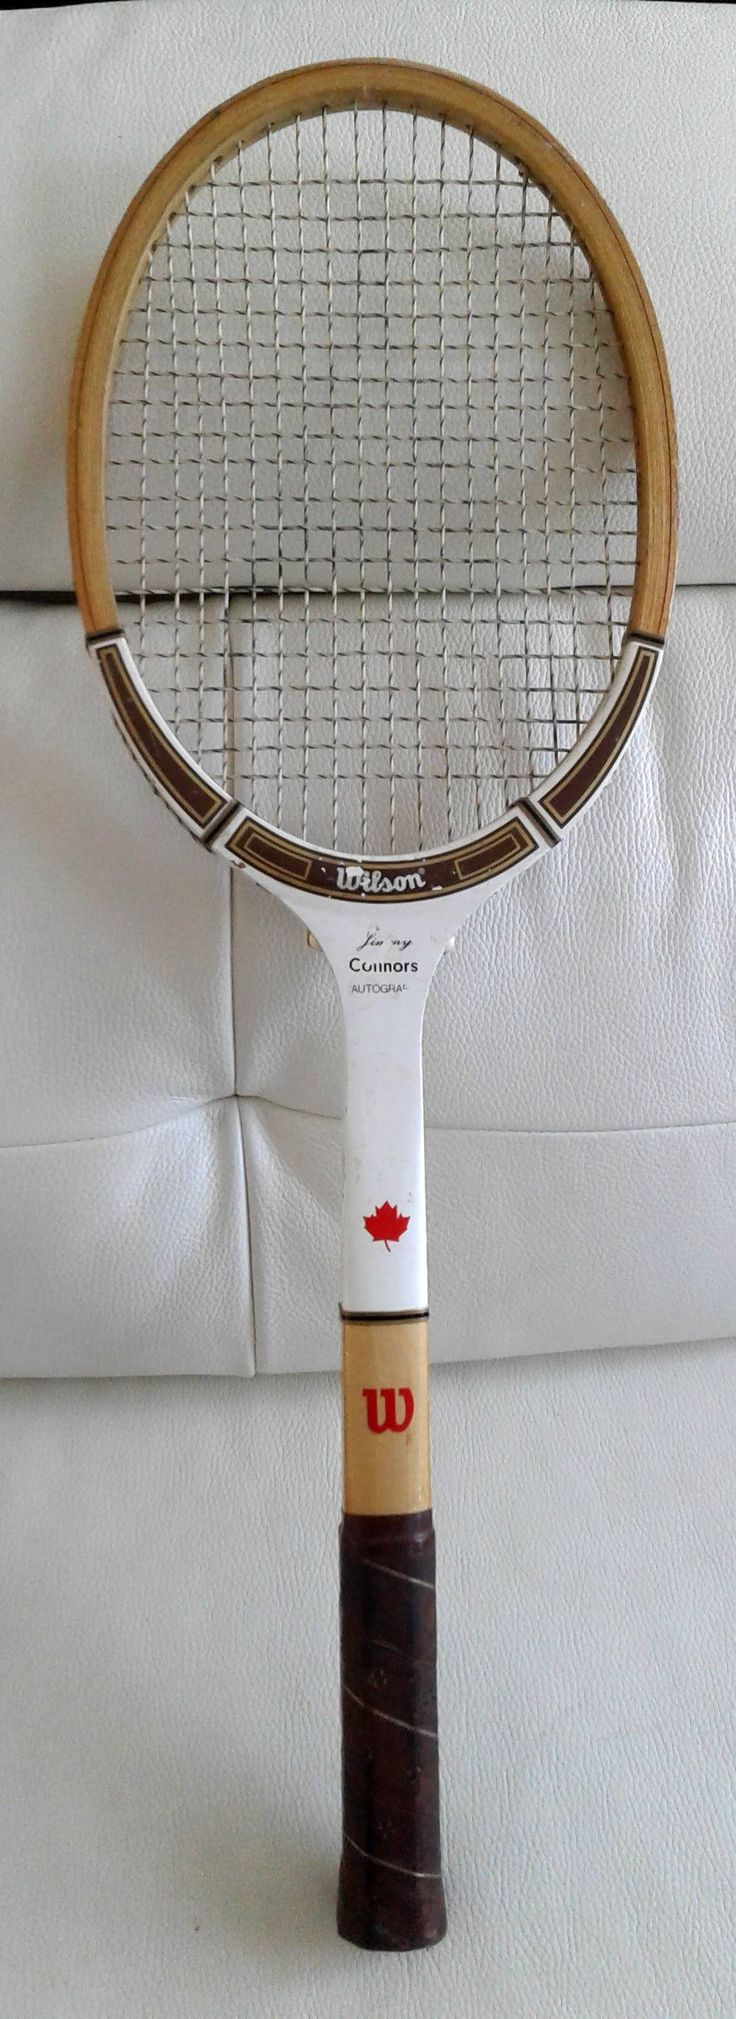 Vintage 1970'S Jimmy Connors Wilson Tennis Racquet Made in canada from Simpson's Sears by TreasuresMemories on Etsy